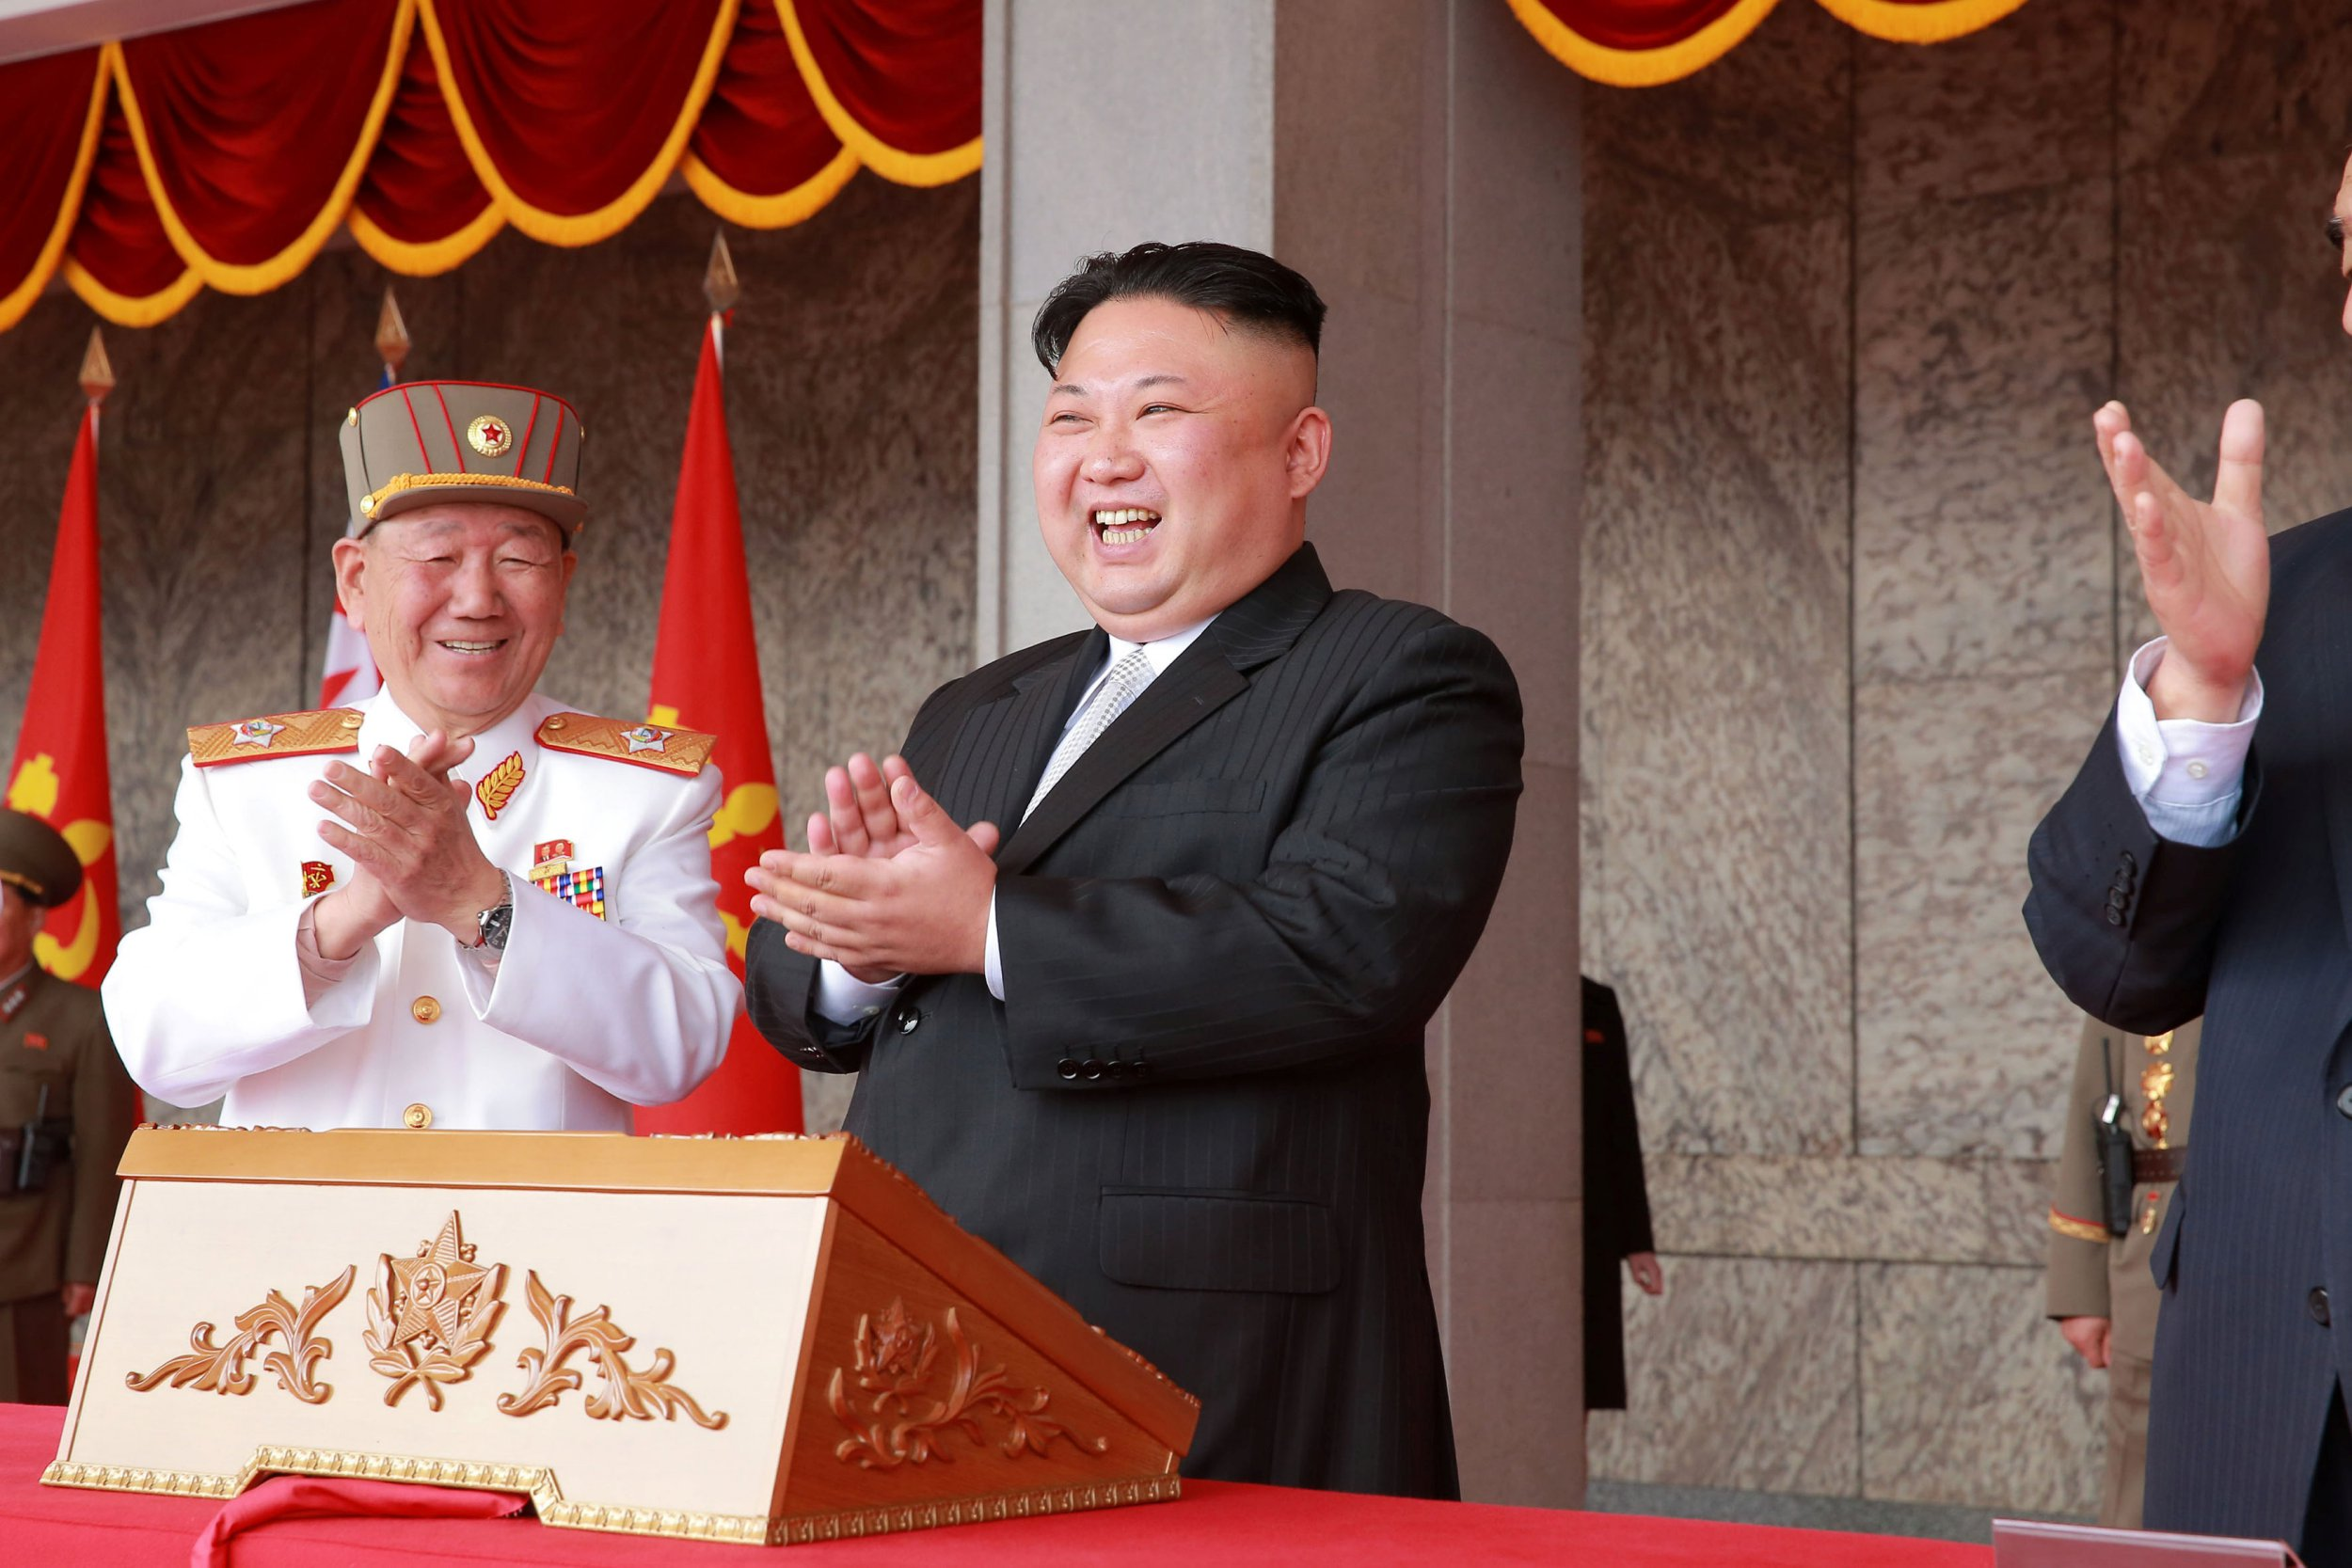 Britain has given millions in foreign aid to North Korea despite nuclear war threats